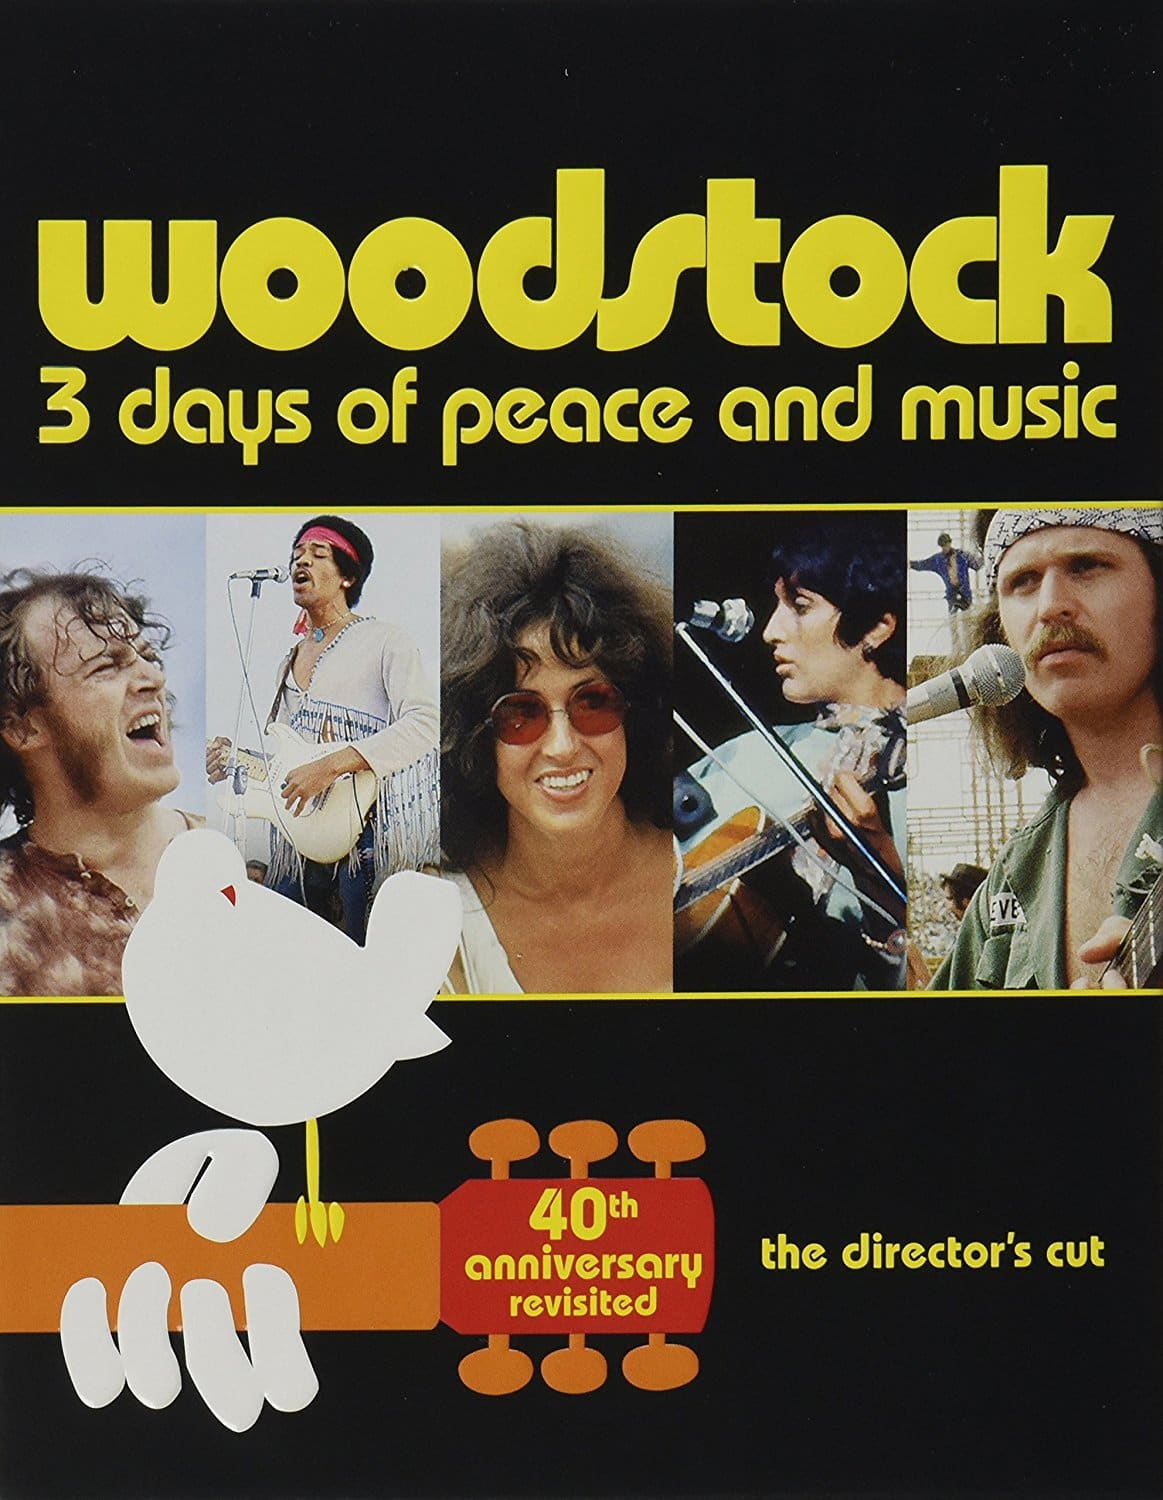 Woodstock 40th Anniversary Limited Edition Revisited [Blu-ray] (3 discs) $5 FSSS or FS with prime (deal is back!)